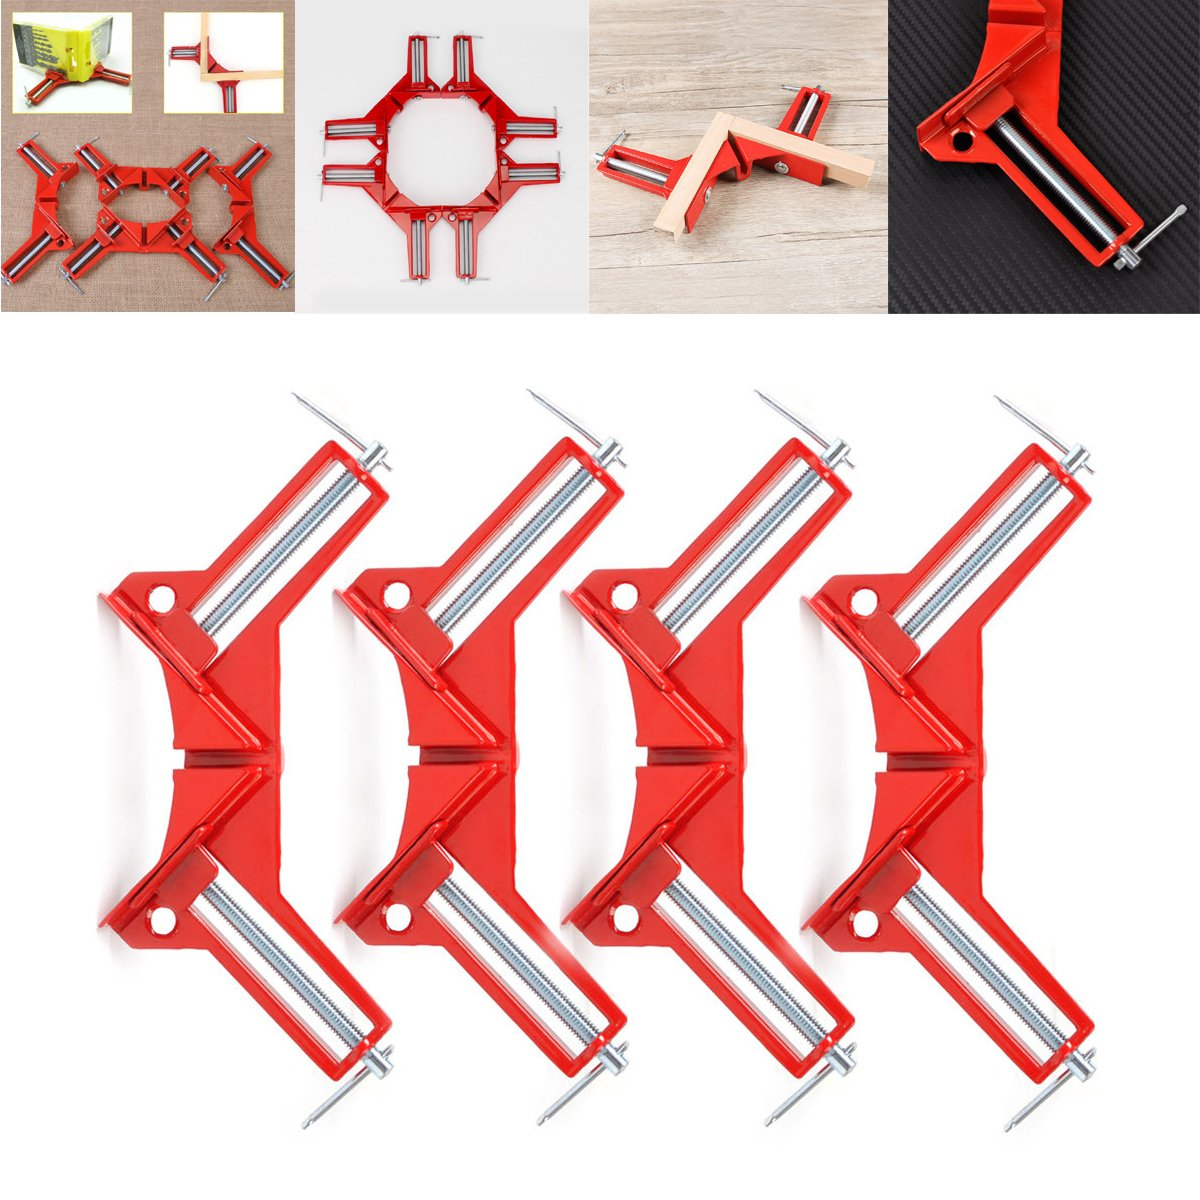 Set of 4 Right Angle Clamp, 90 Degrees 100mm Corner Clamp, Picture Frame Holder, Glass Holder, DIY Woodworking Holder